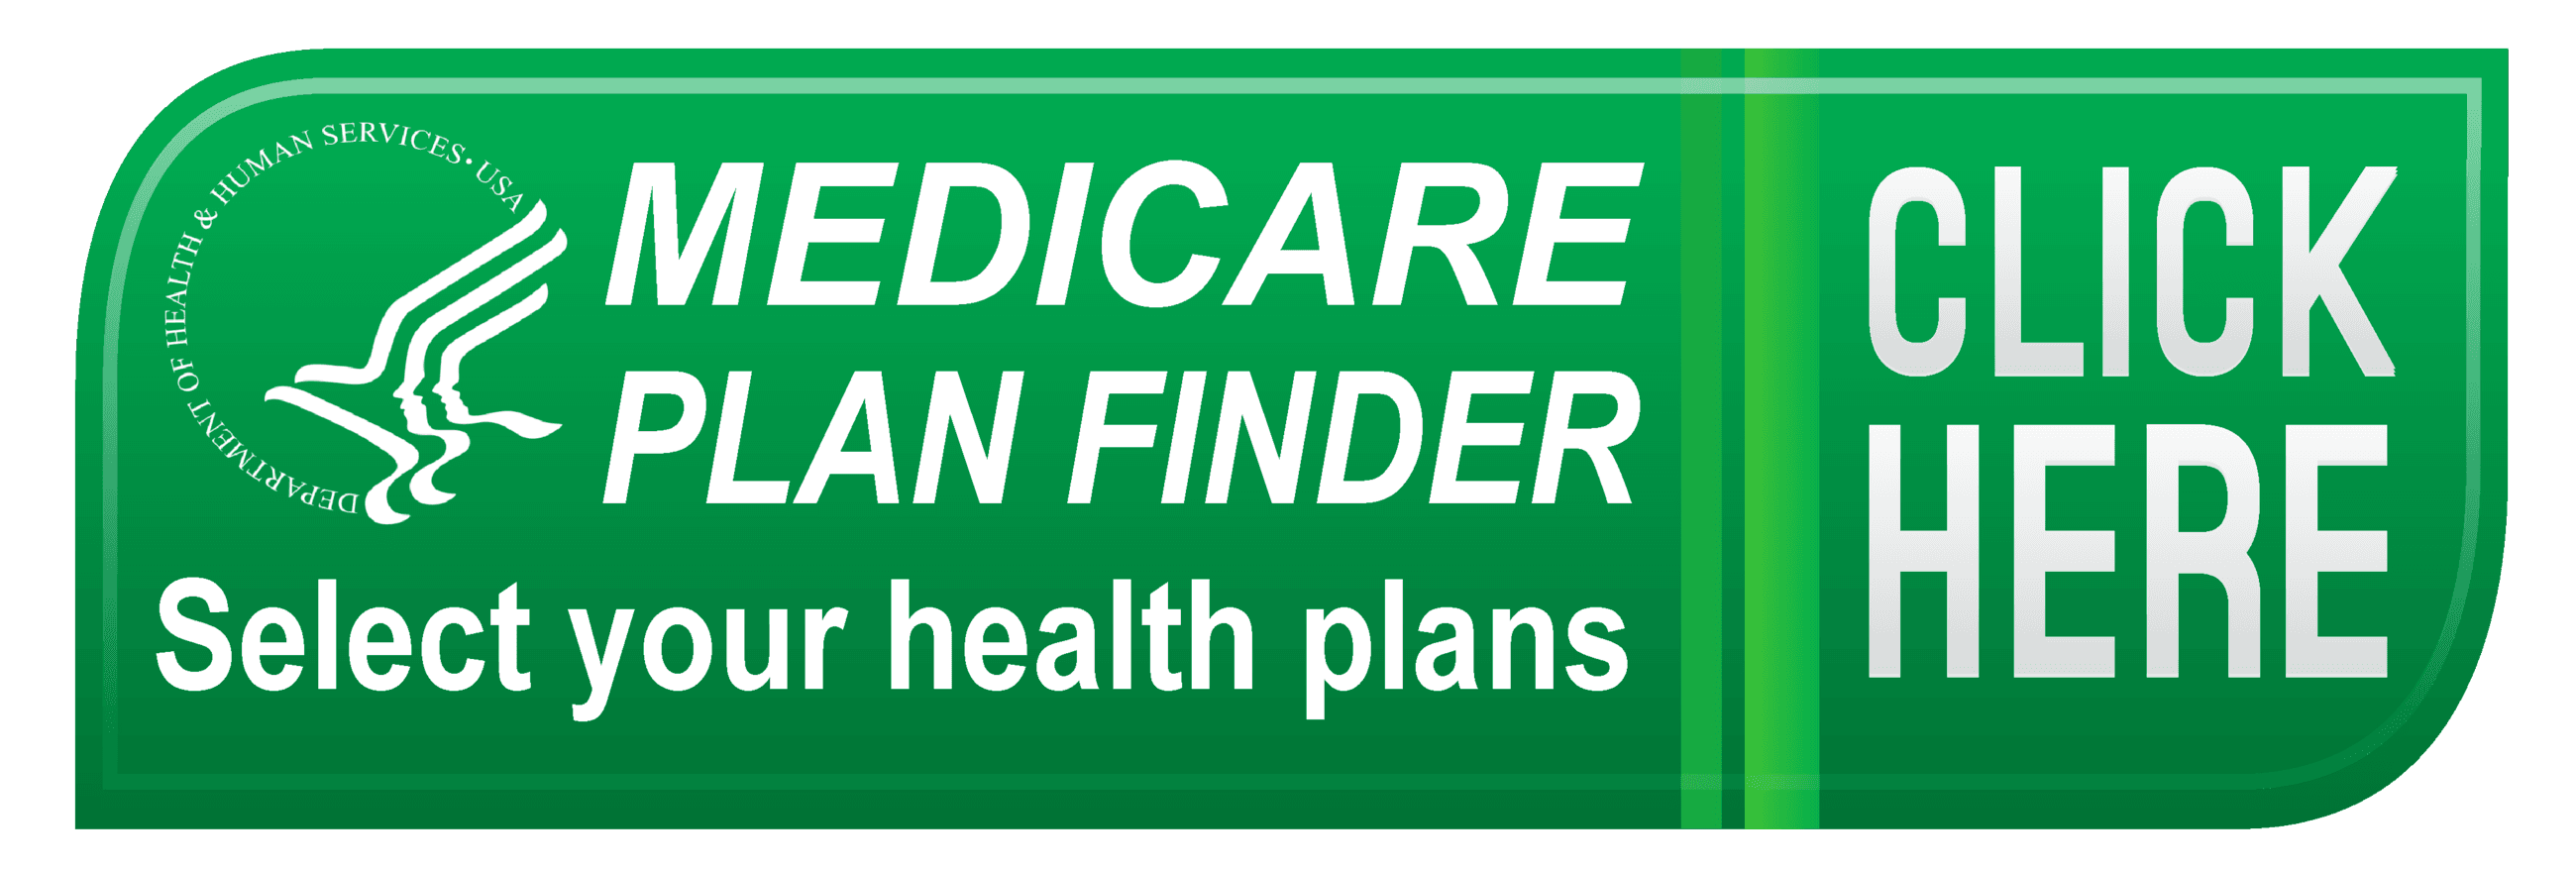 Medicare Plan Finder button